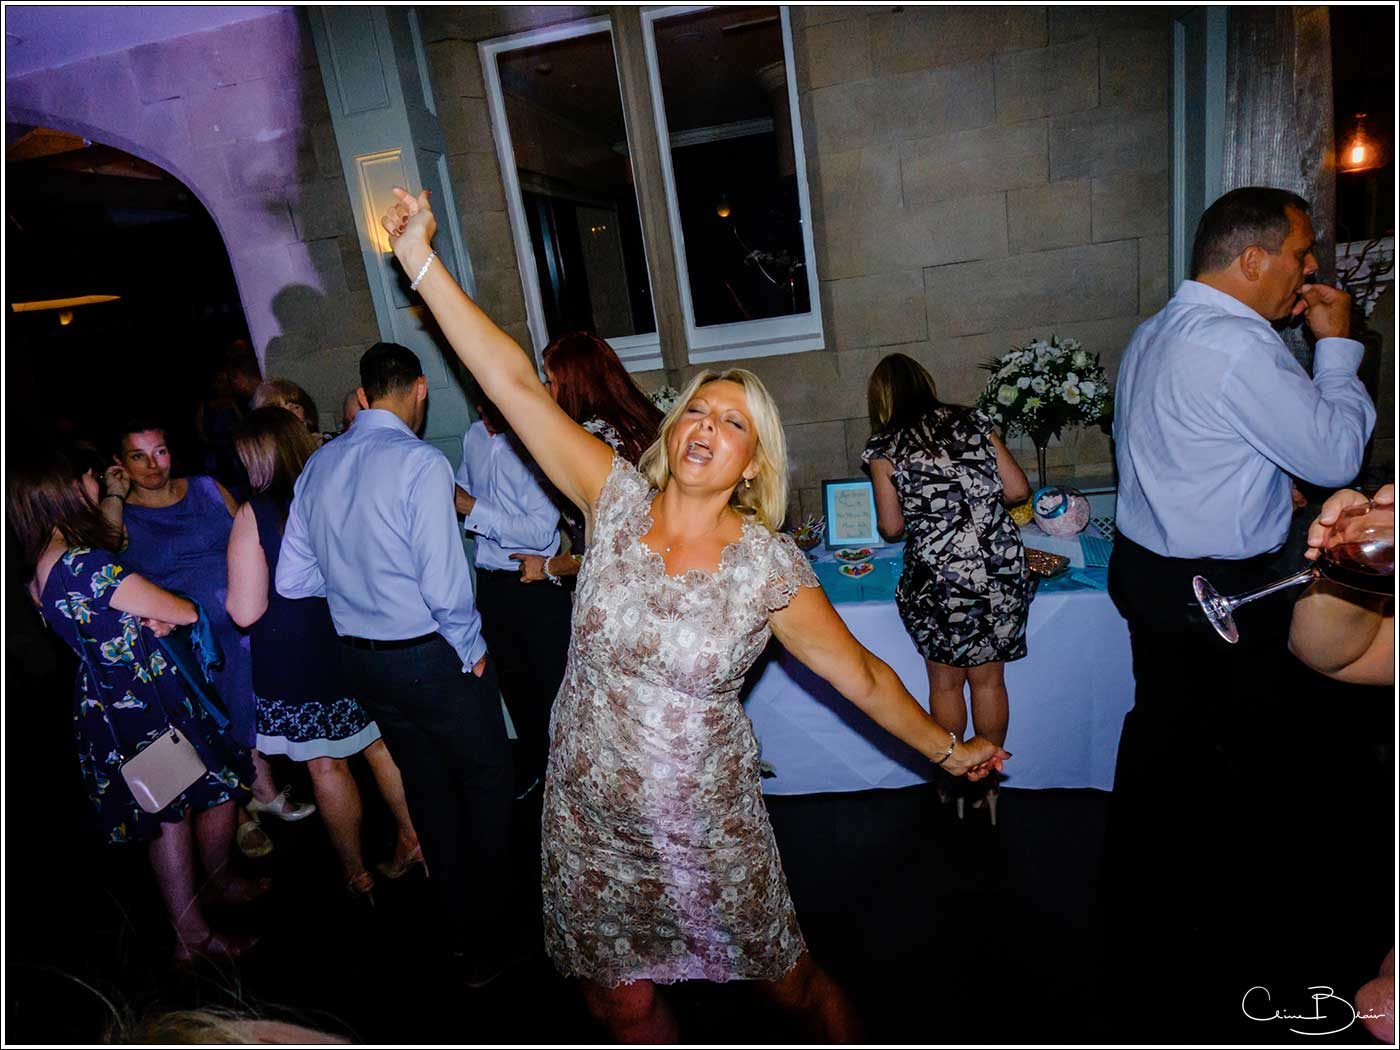 Woman singing loud during evening reception-by Hampton manor wedding photographer Clive Blair Photography